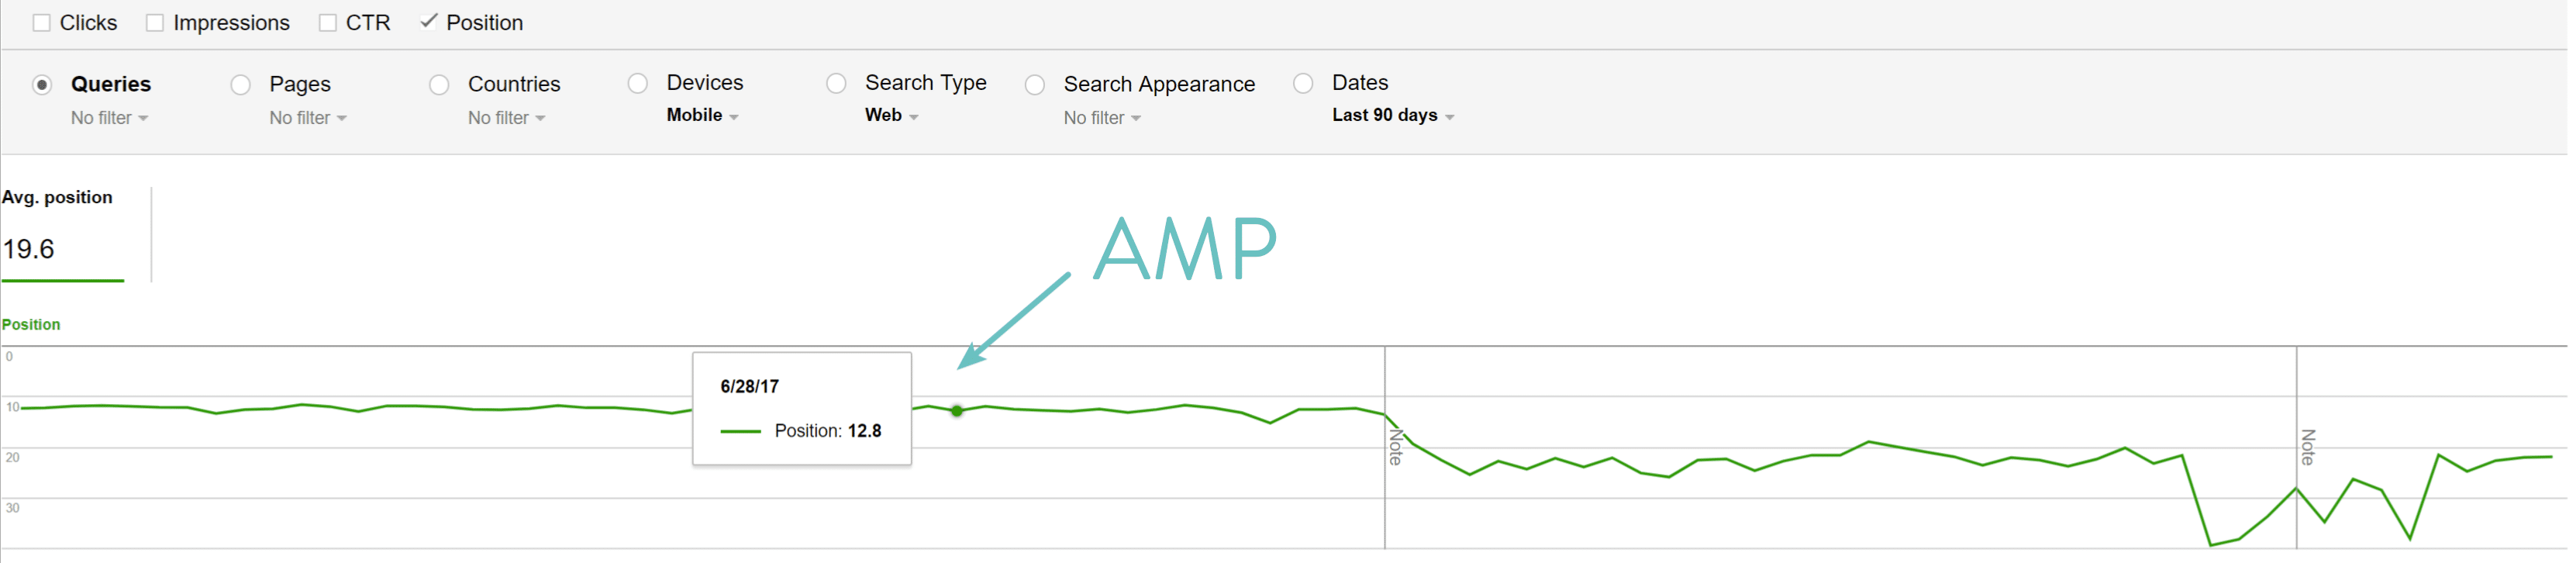 Google AMP positions data